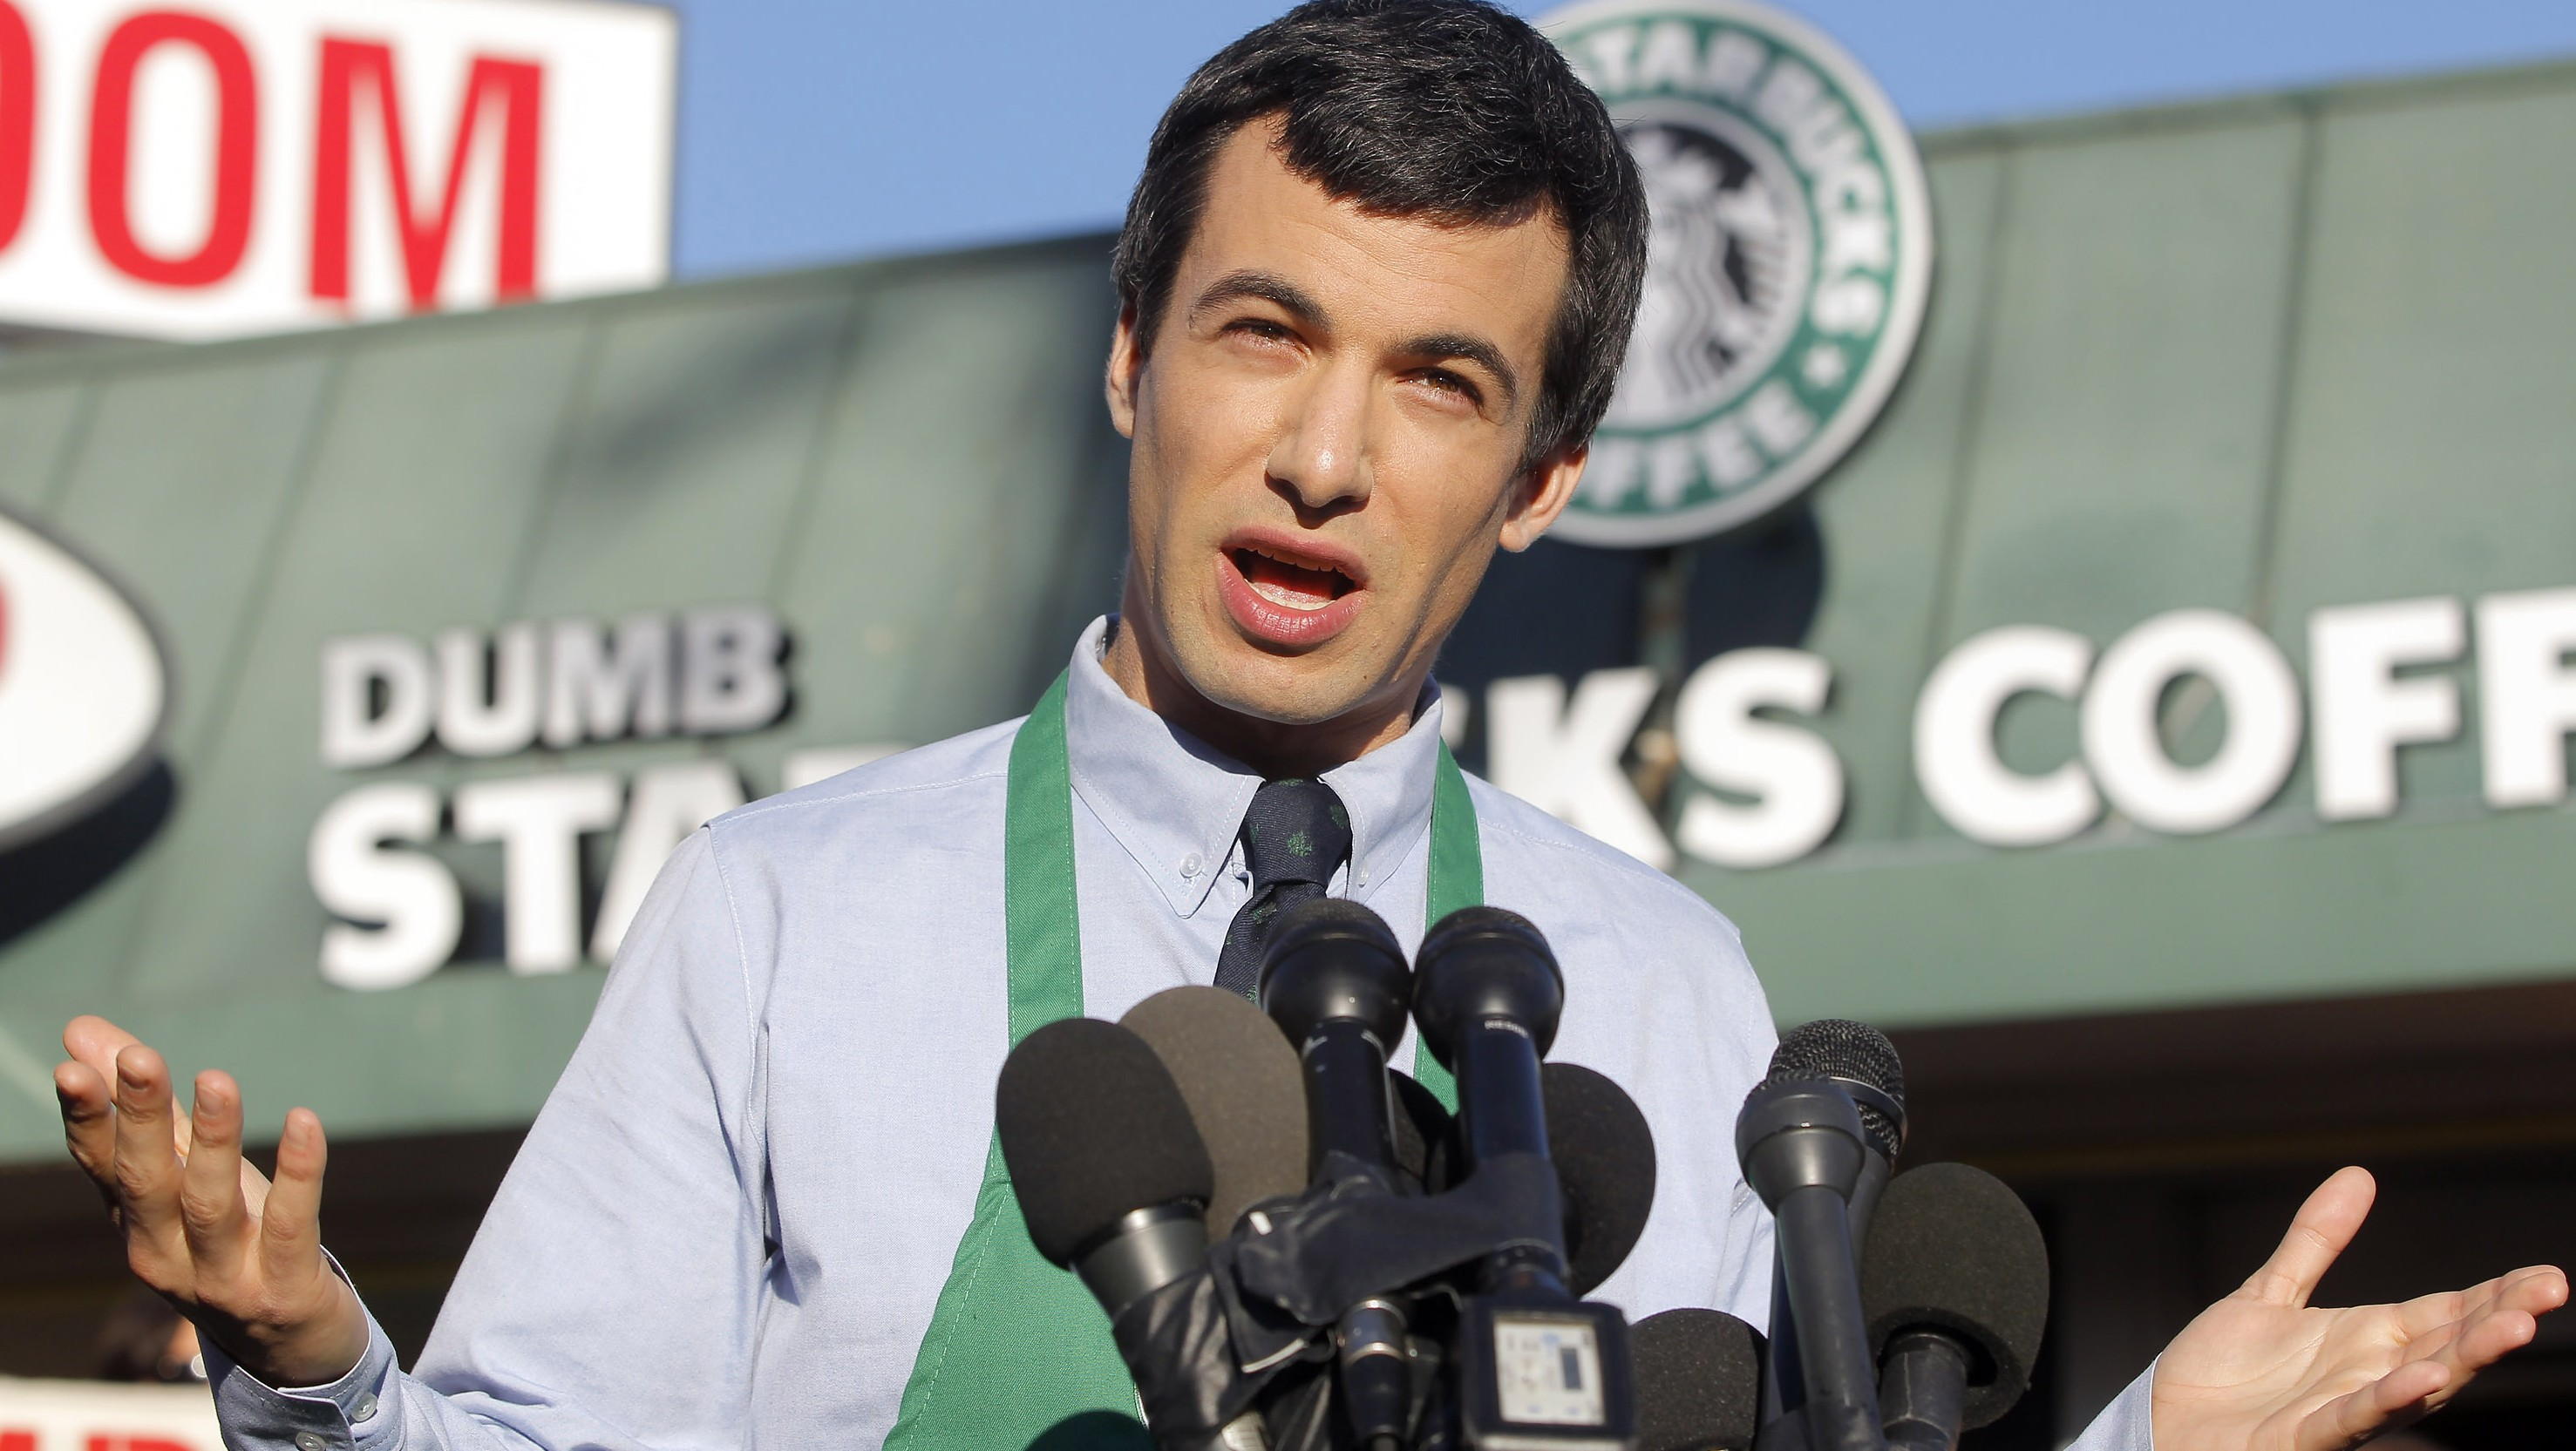 Confirmed: Nathan Fielder Is Behind Dumb Starbucks, and